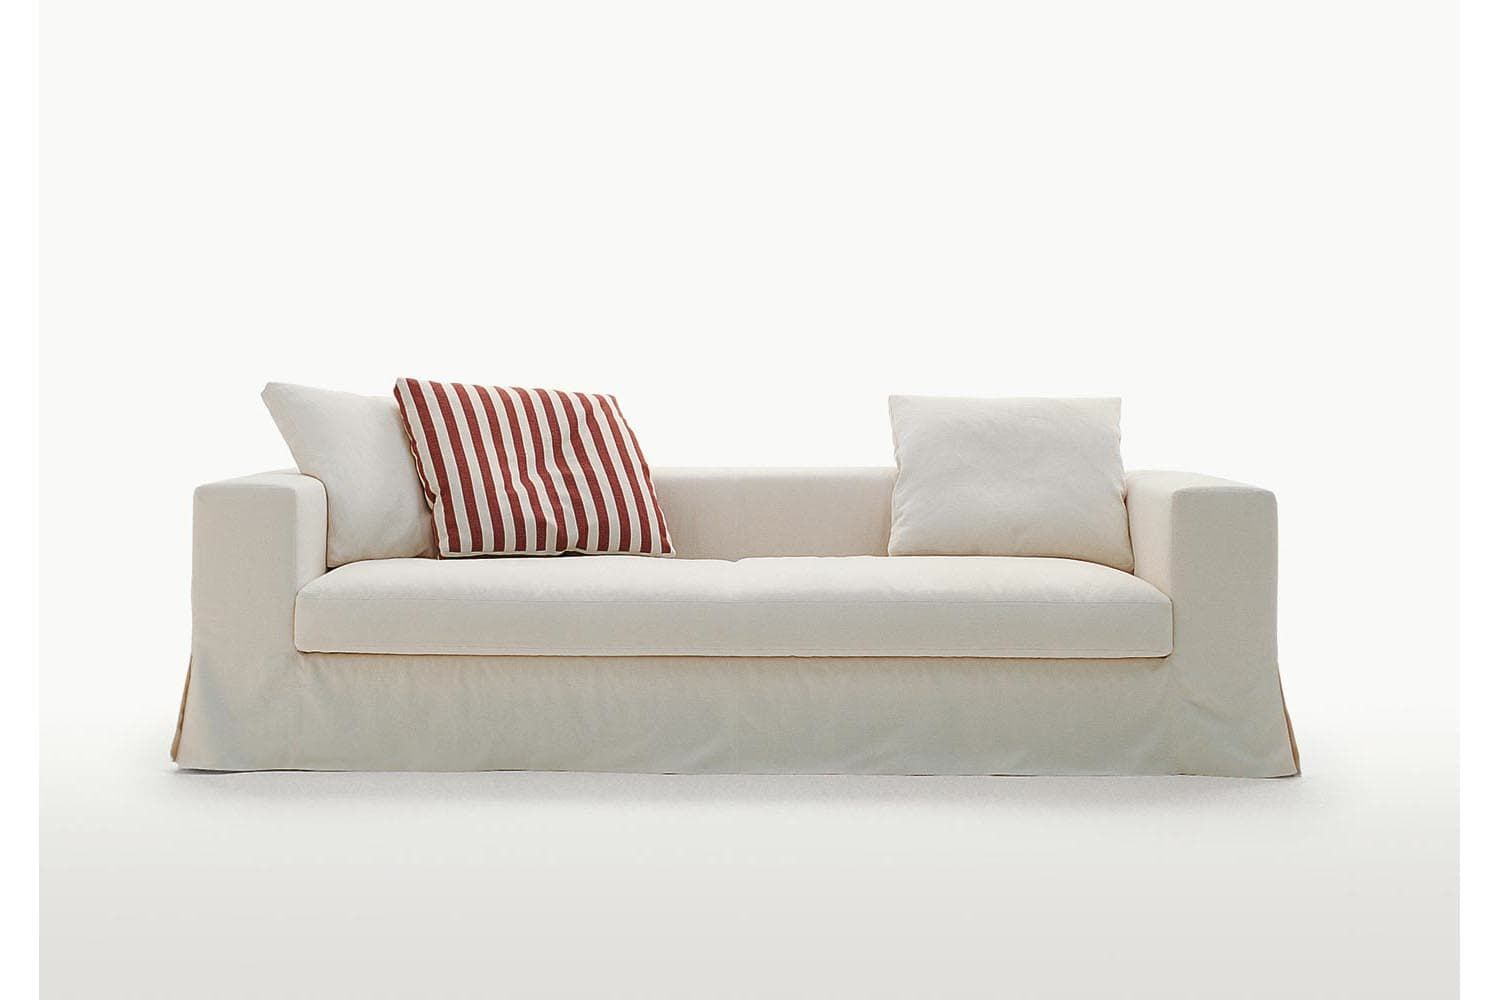 Simplex Sofa With Slip Cover By Antonio Citterio For Maxalto